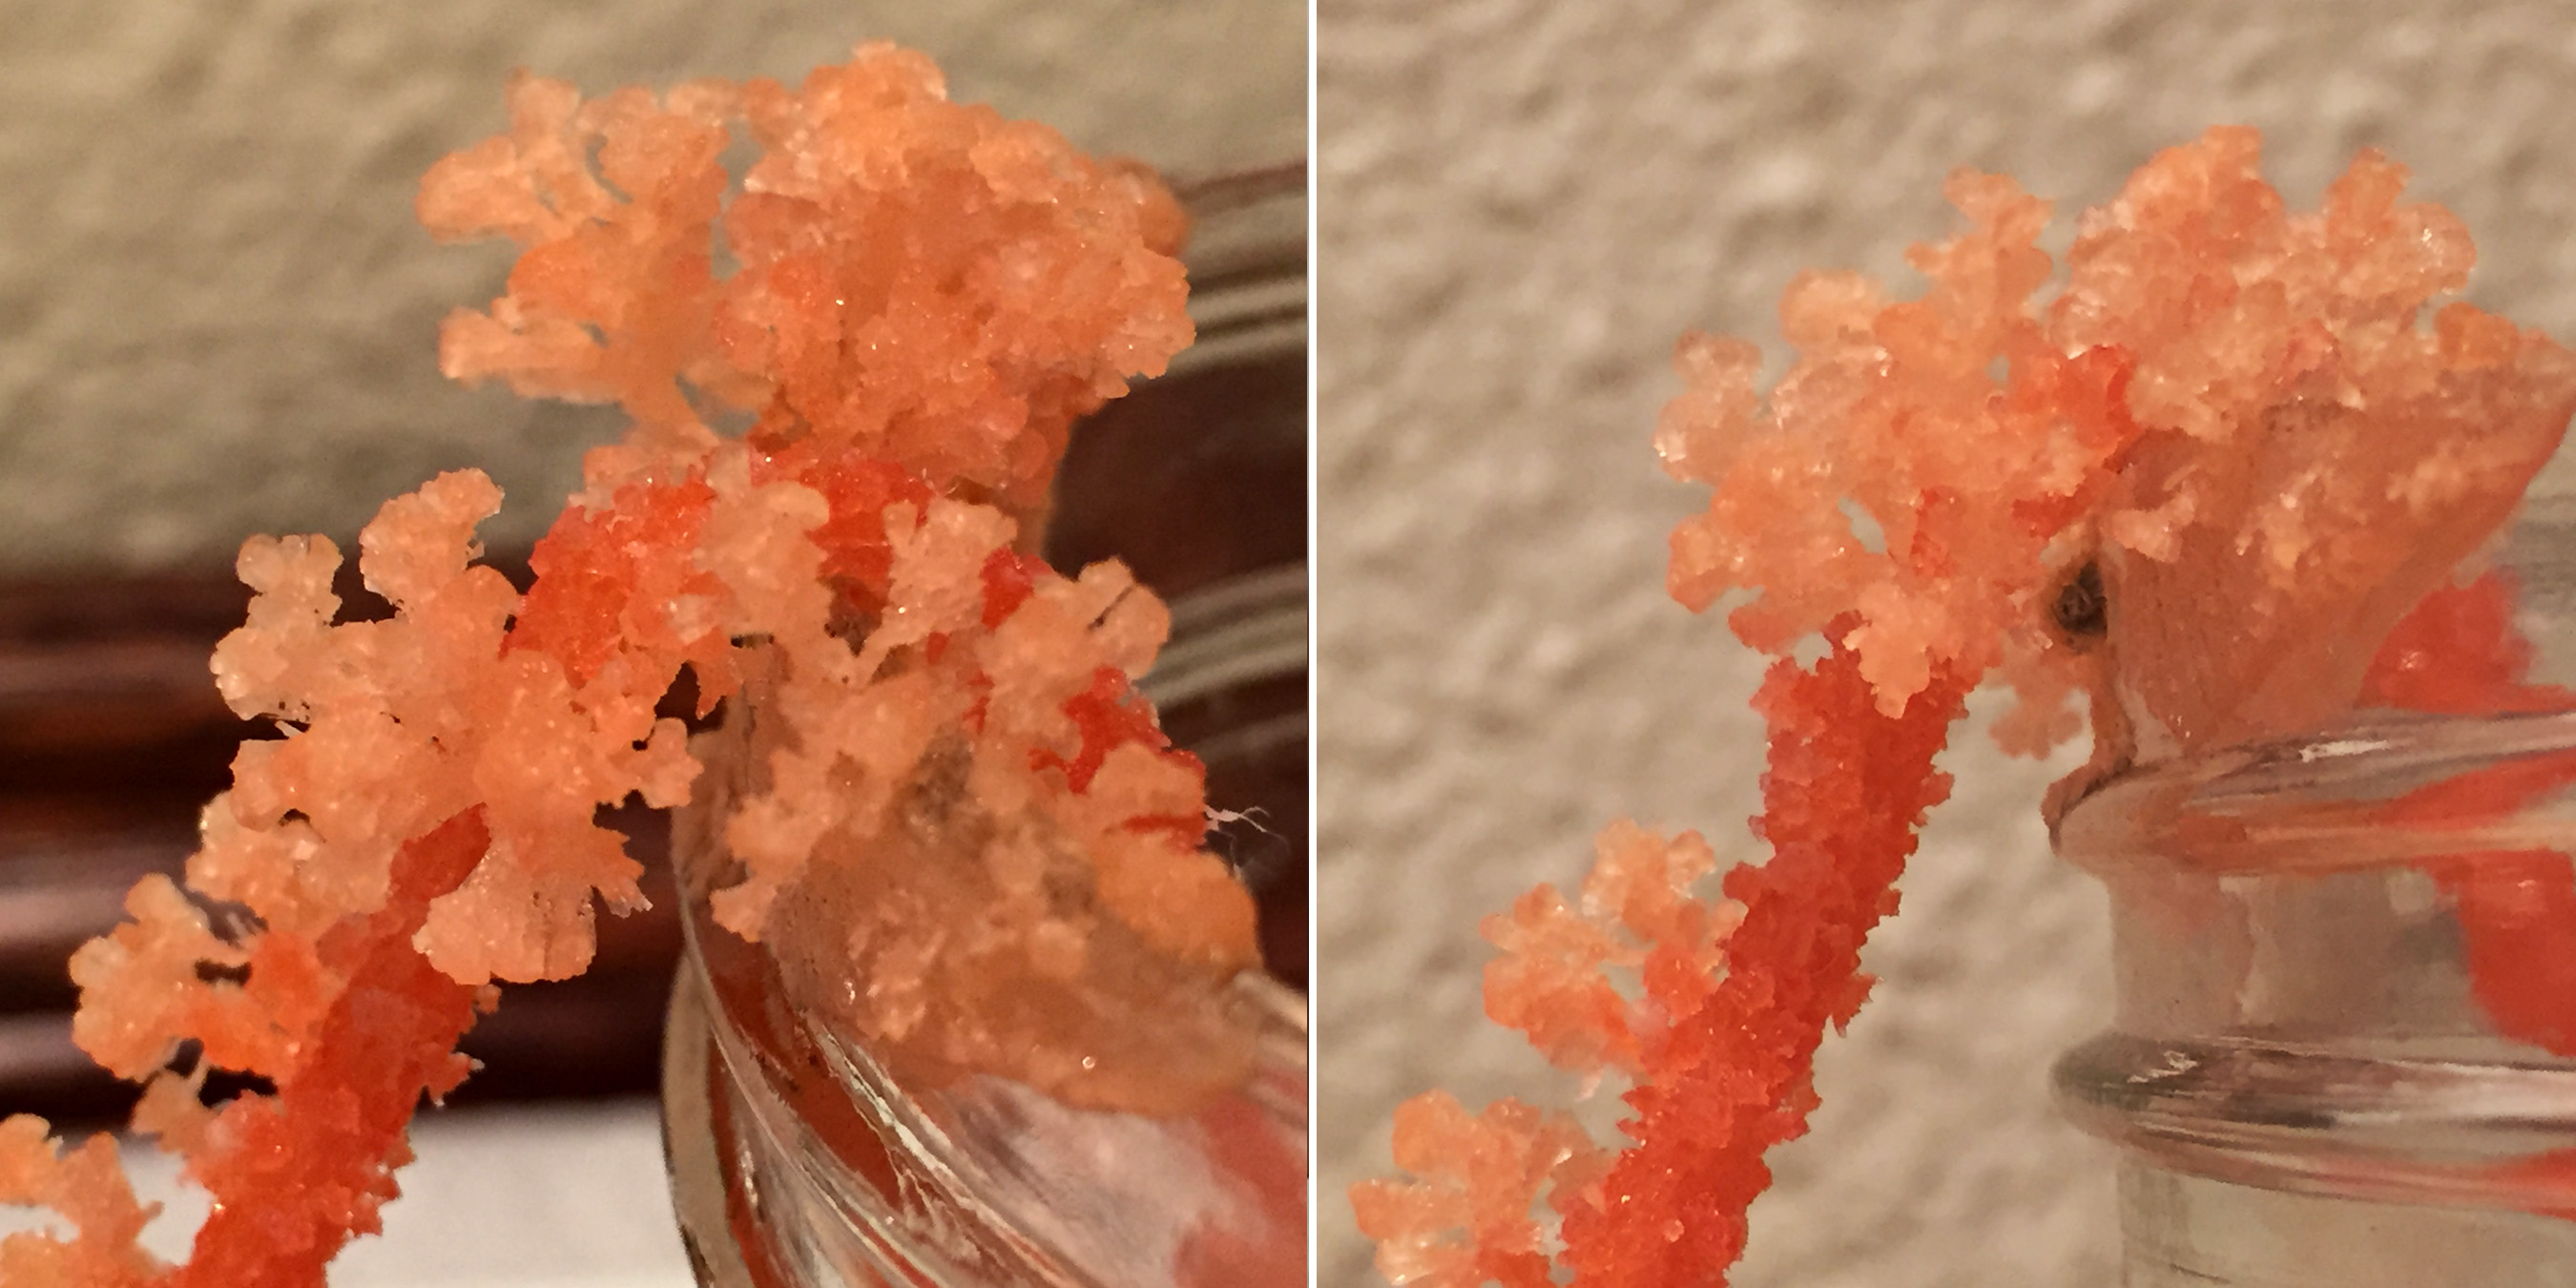 Picture of The Crystals Also Like Growing on the Edge of the Jars